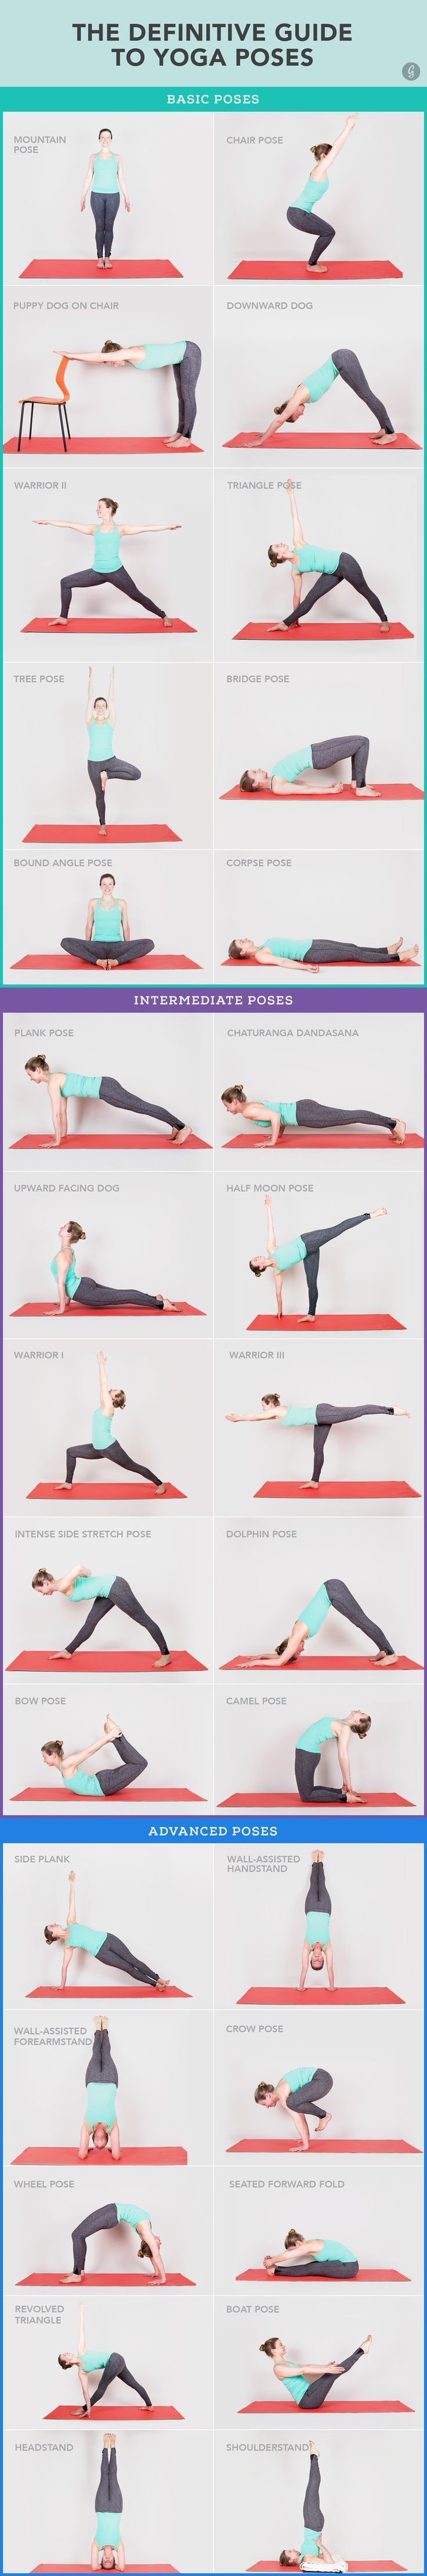 Finally some yoga poses that a beginner and no longer very flexible person might be able to do!  30 Yoga Poses You Really Need To Know  Namaste! #yoga #workout #fitness